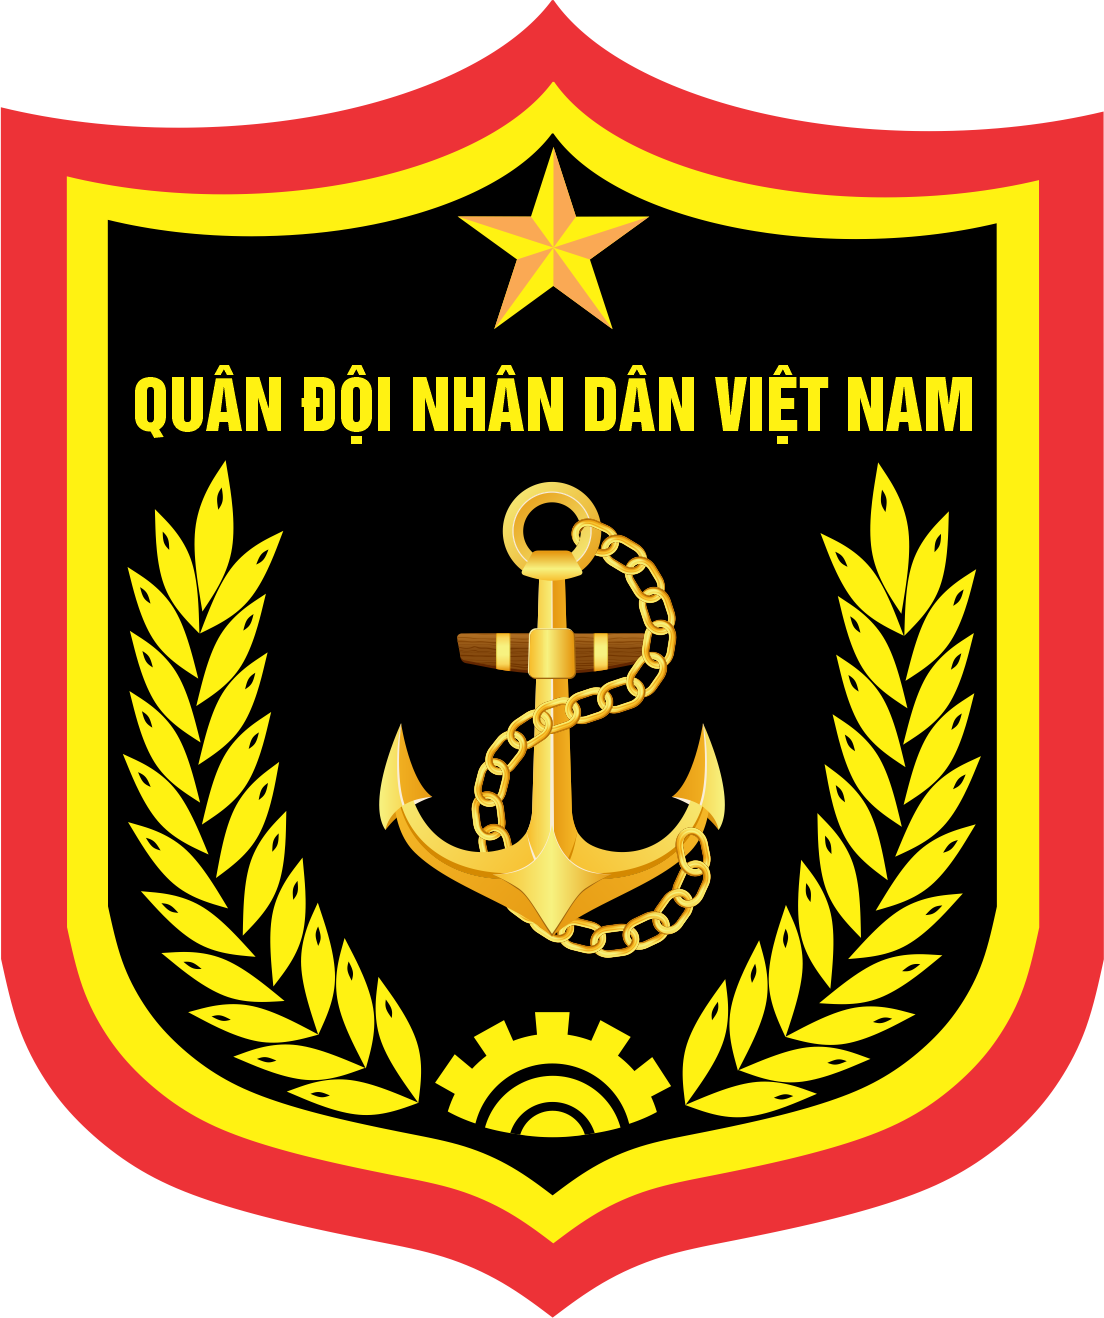 Vietnam People's Navy insignia - Vietnam People's Navy